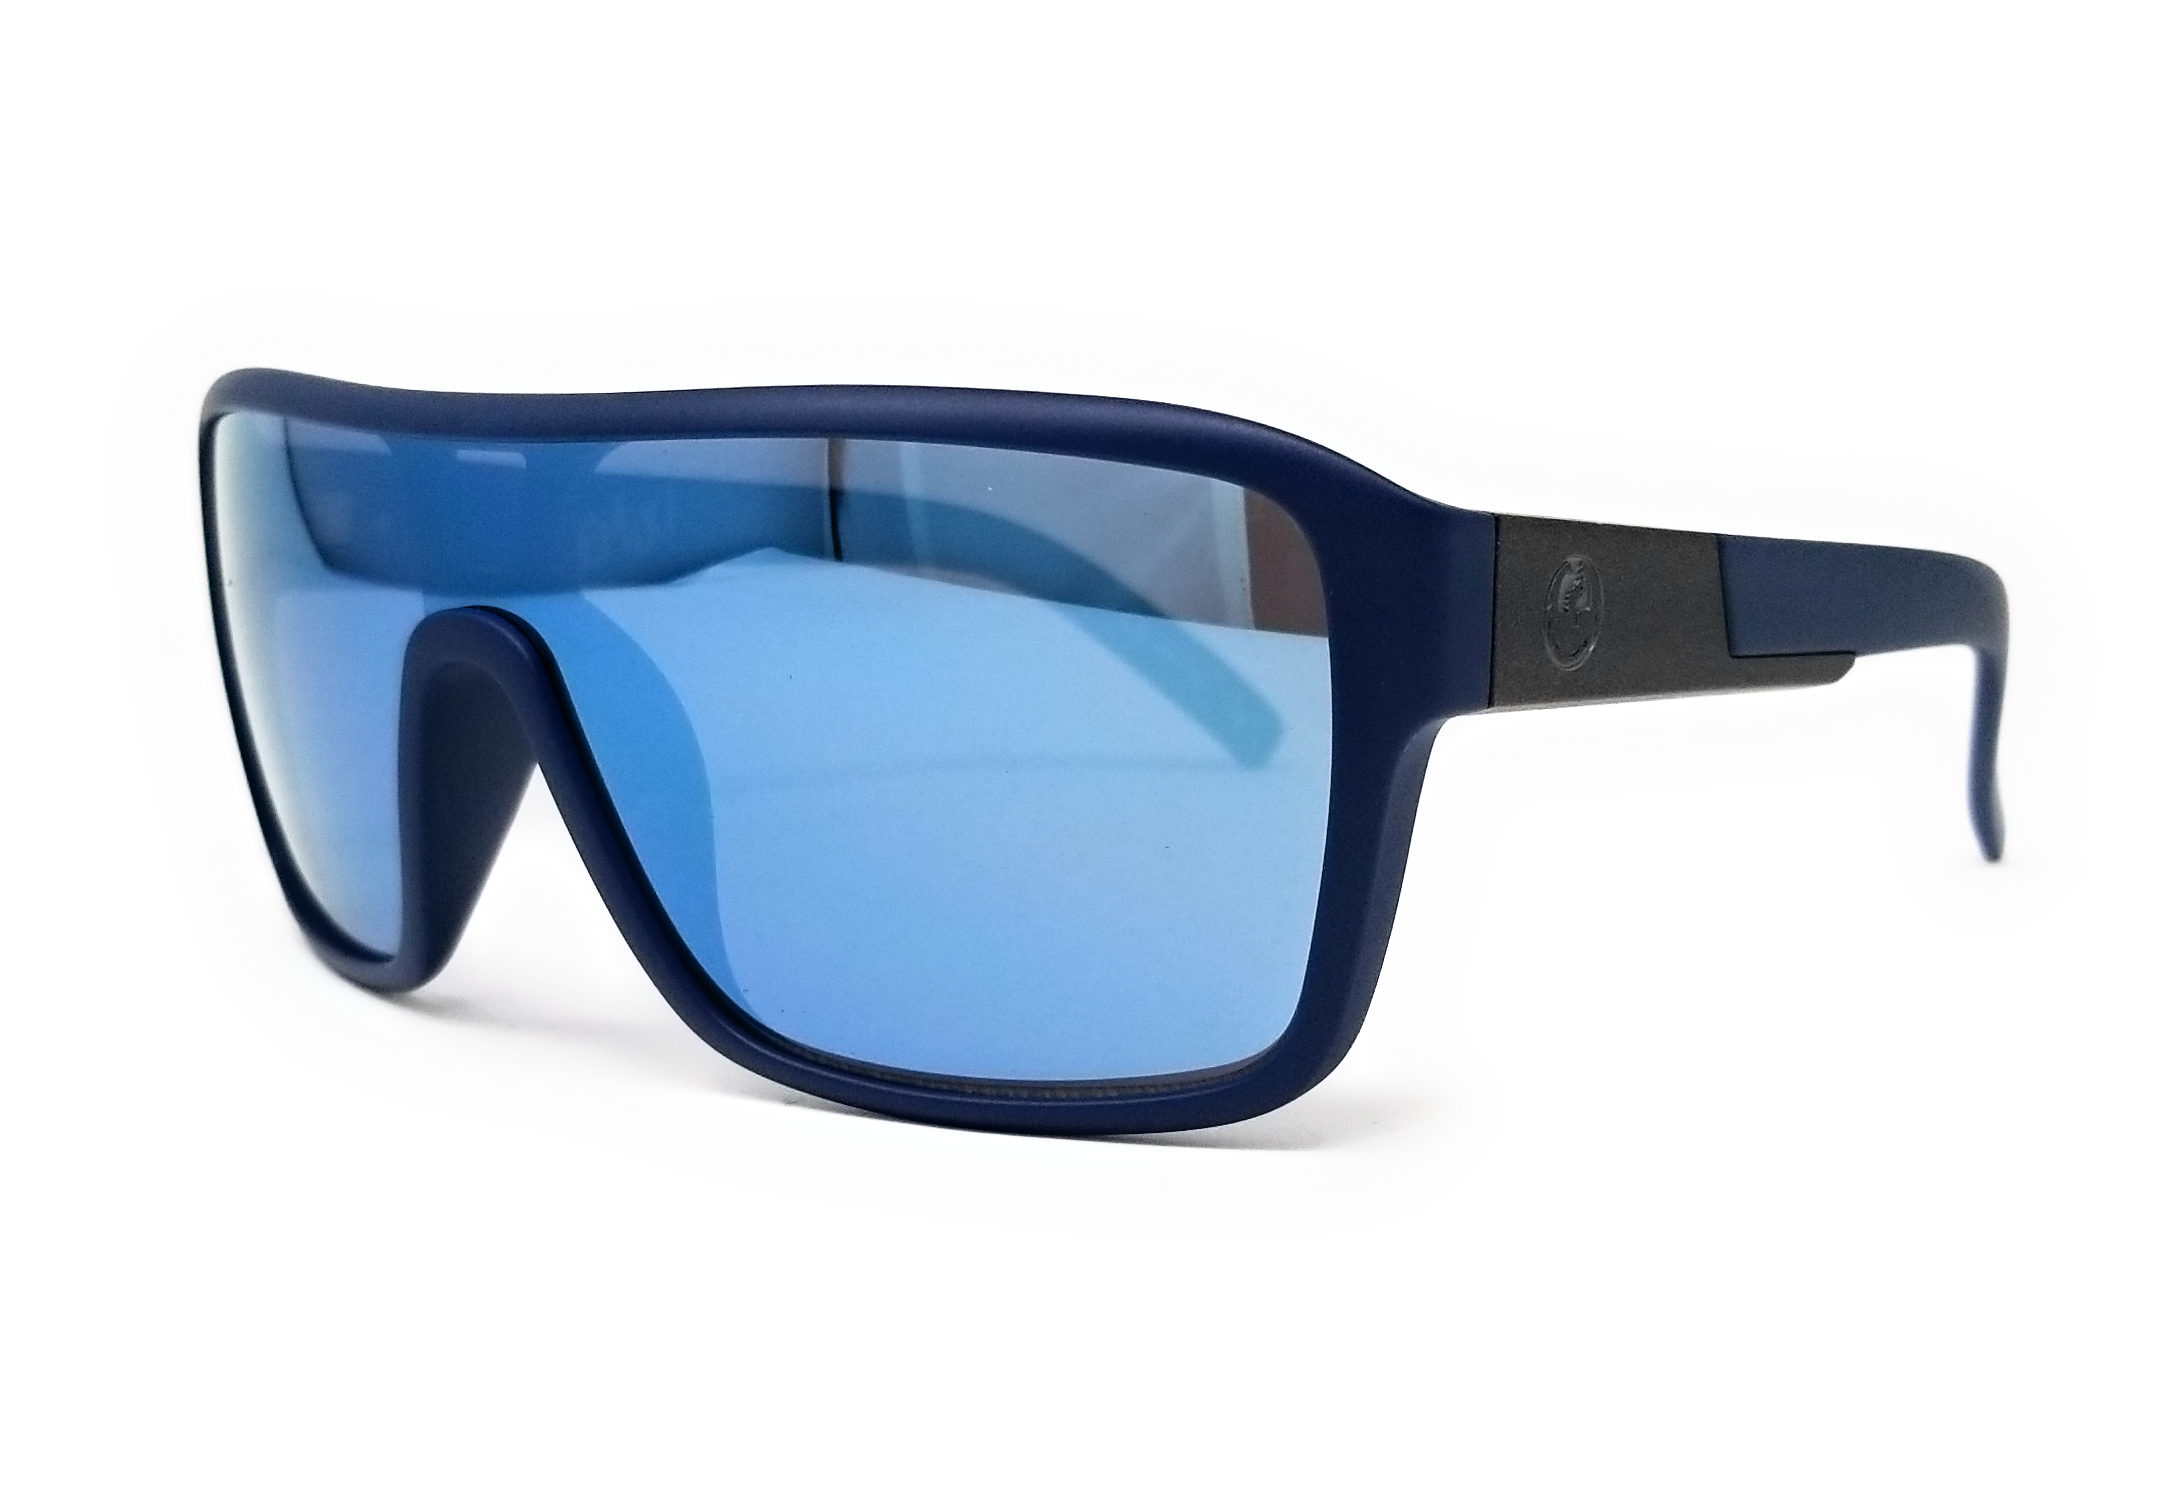 271fa67ef53c Details about DRAGON Sunglasses REMIX 3 414 Matte Navy Shield 68x22x140